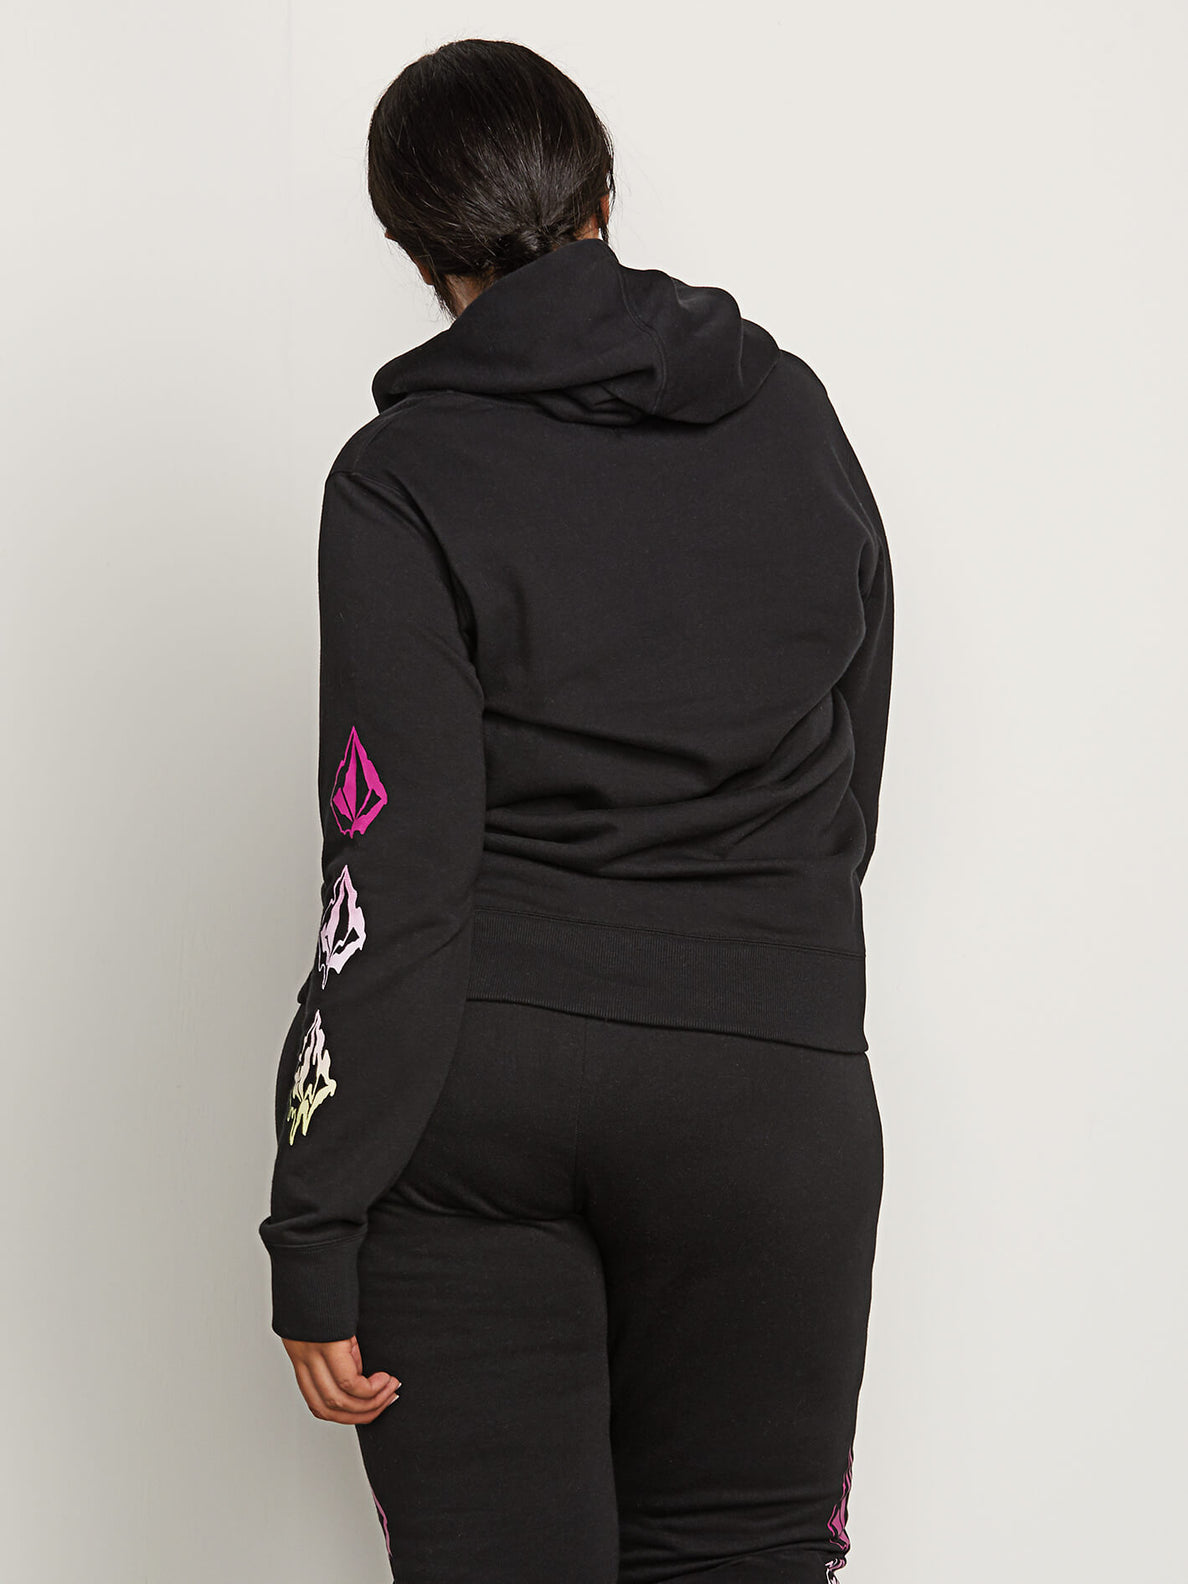 Vol Stone Hoodie In Black, Back Extended Size View